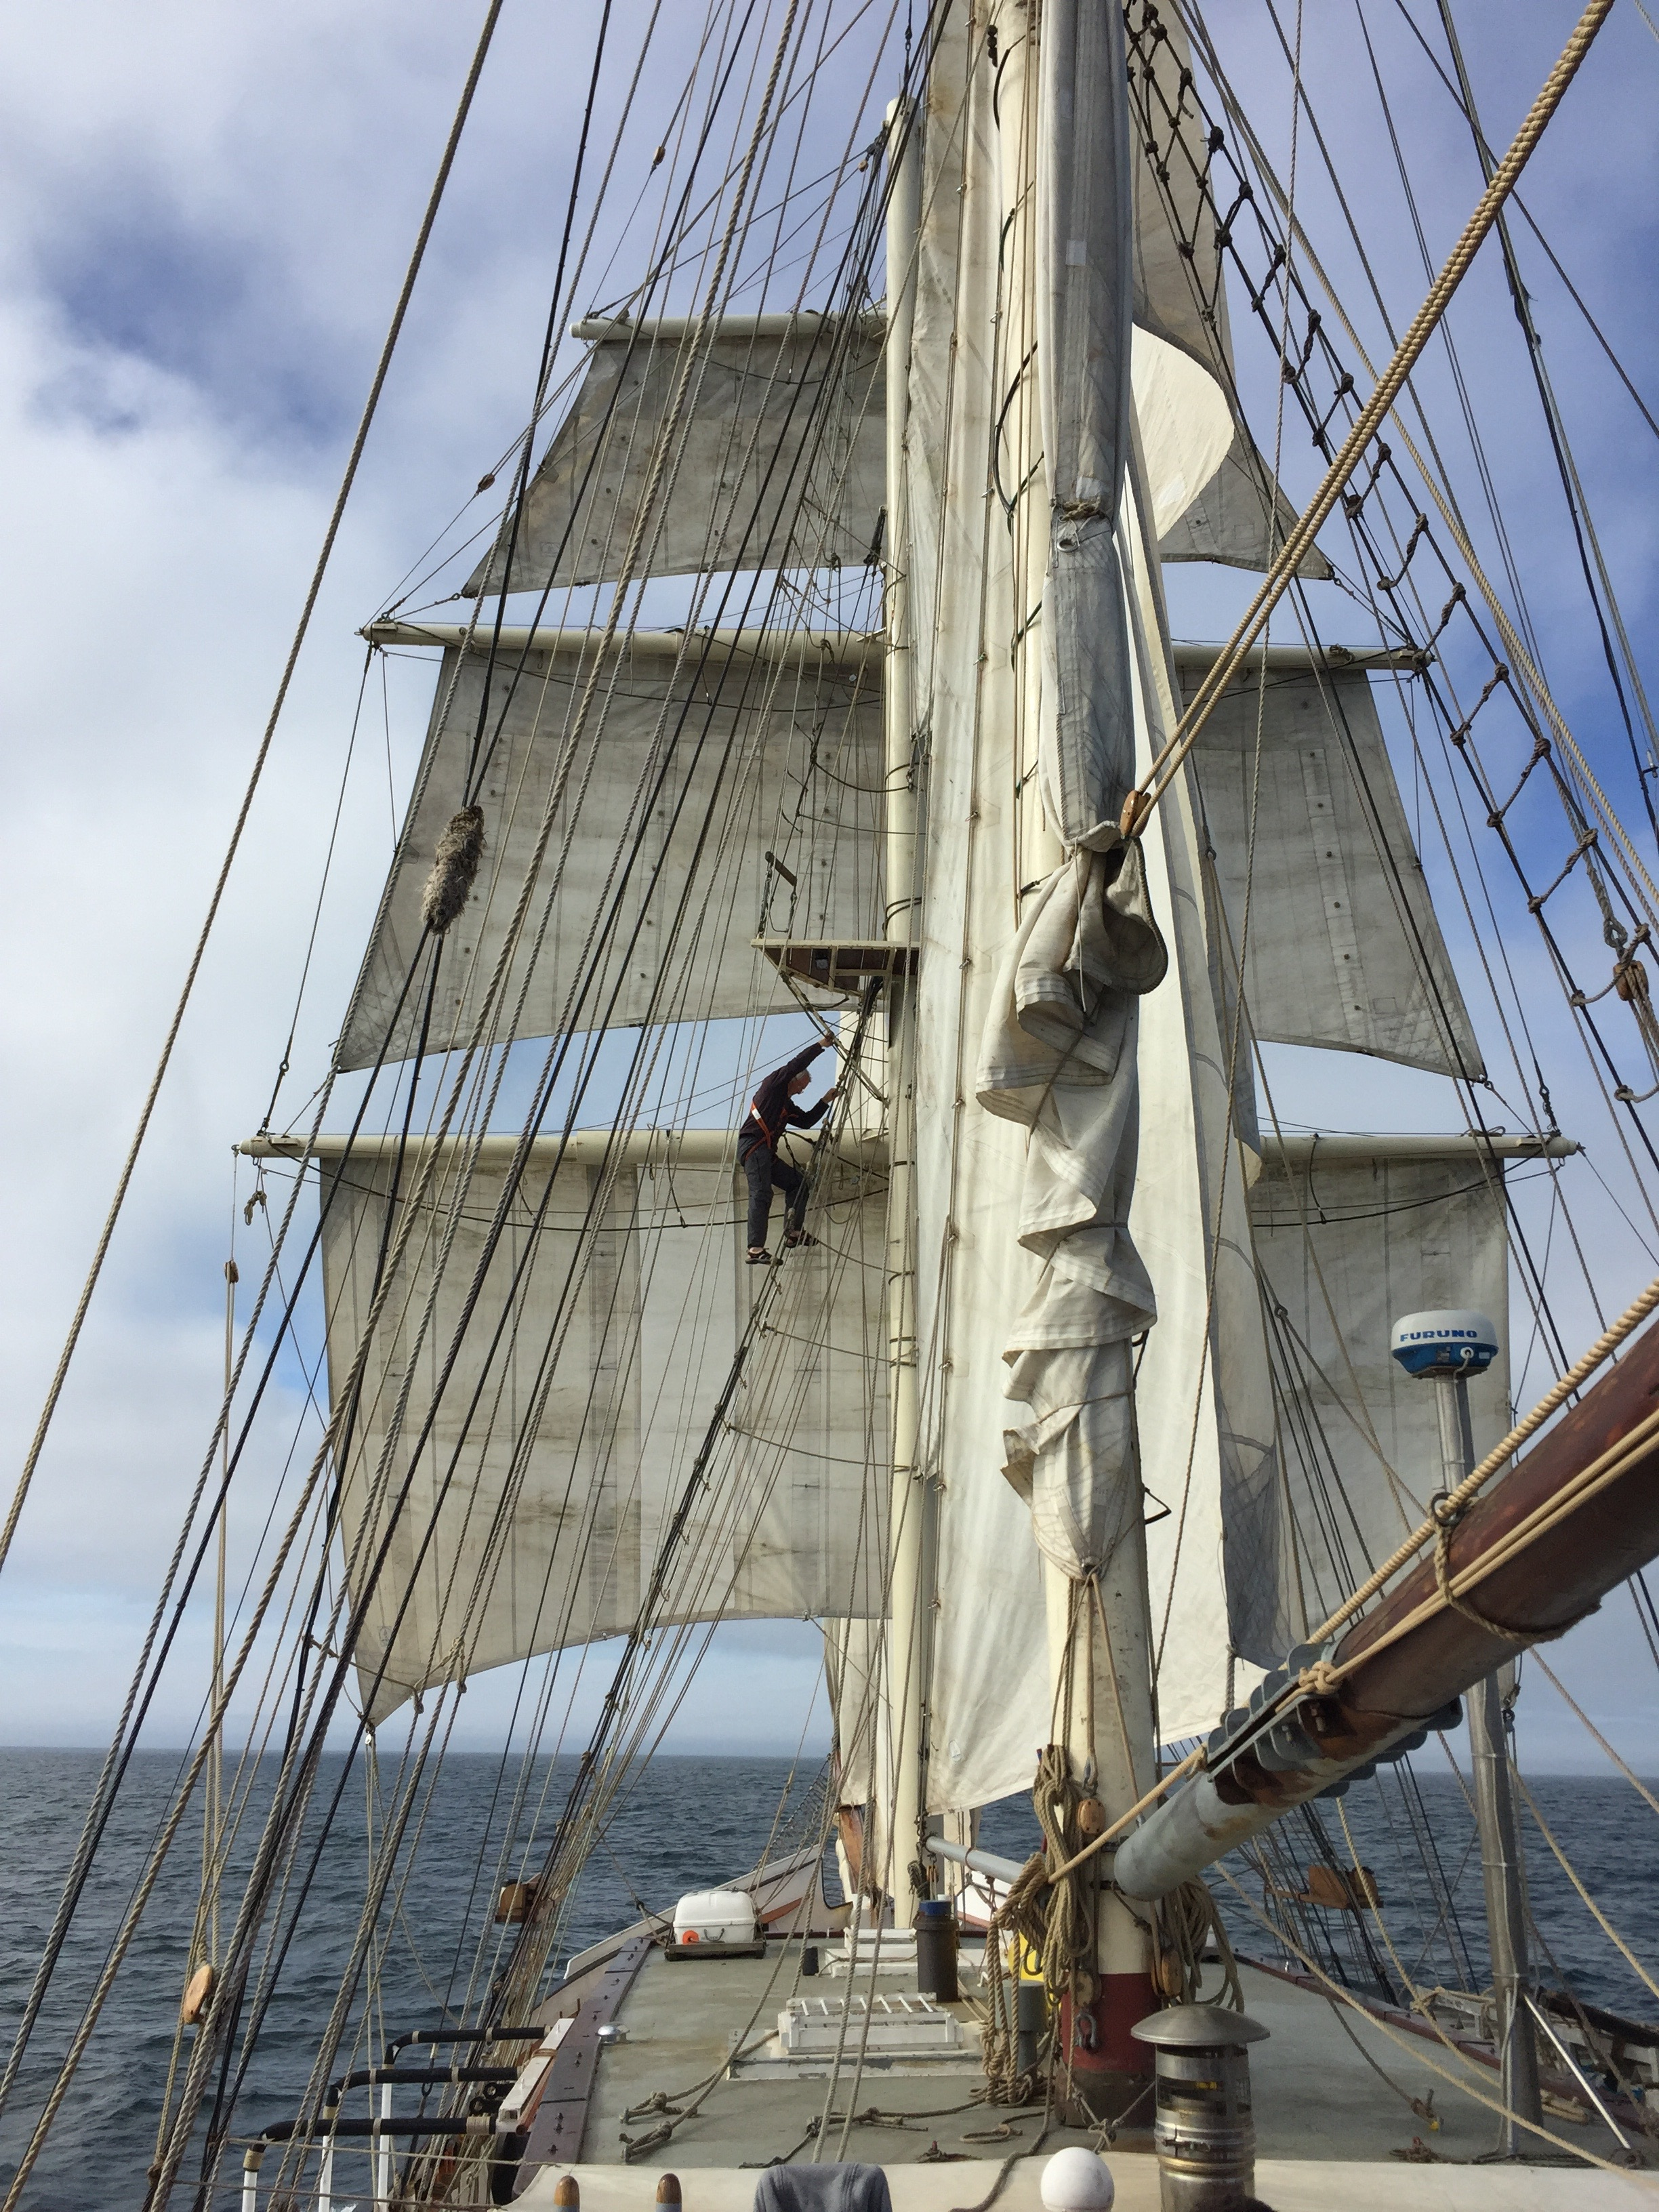 Want to work on a Tall Ship? You'll need these